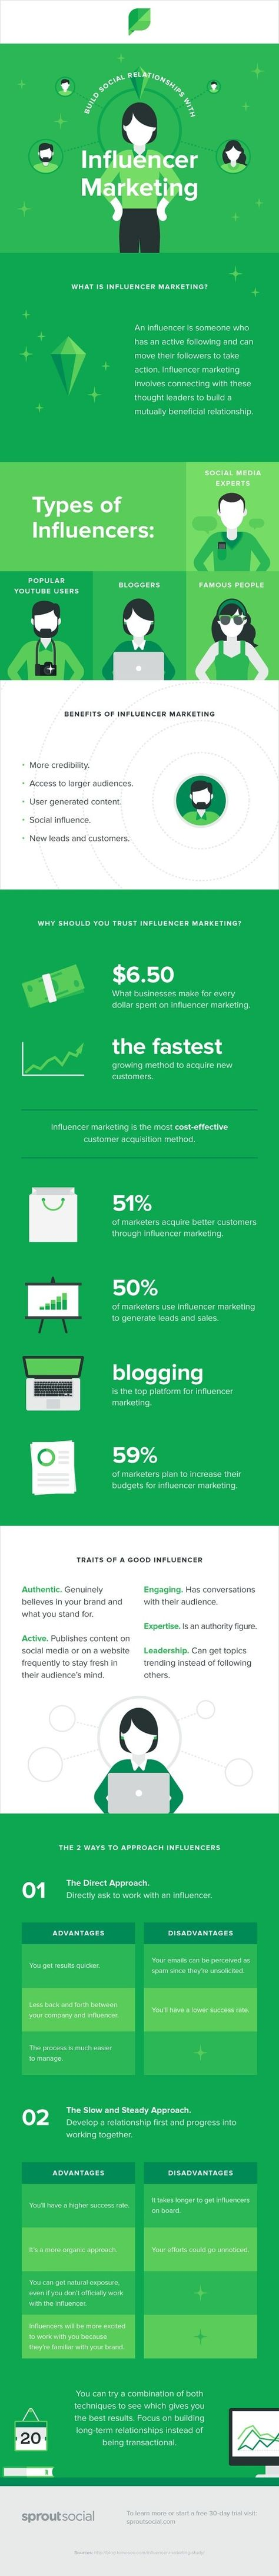 Build Social Relationships With Influencer Marketing [Infographic]